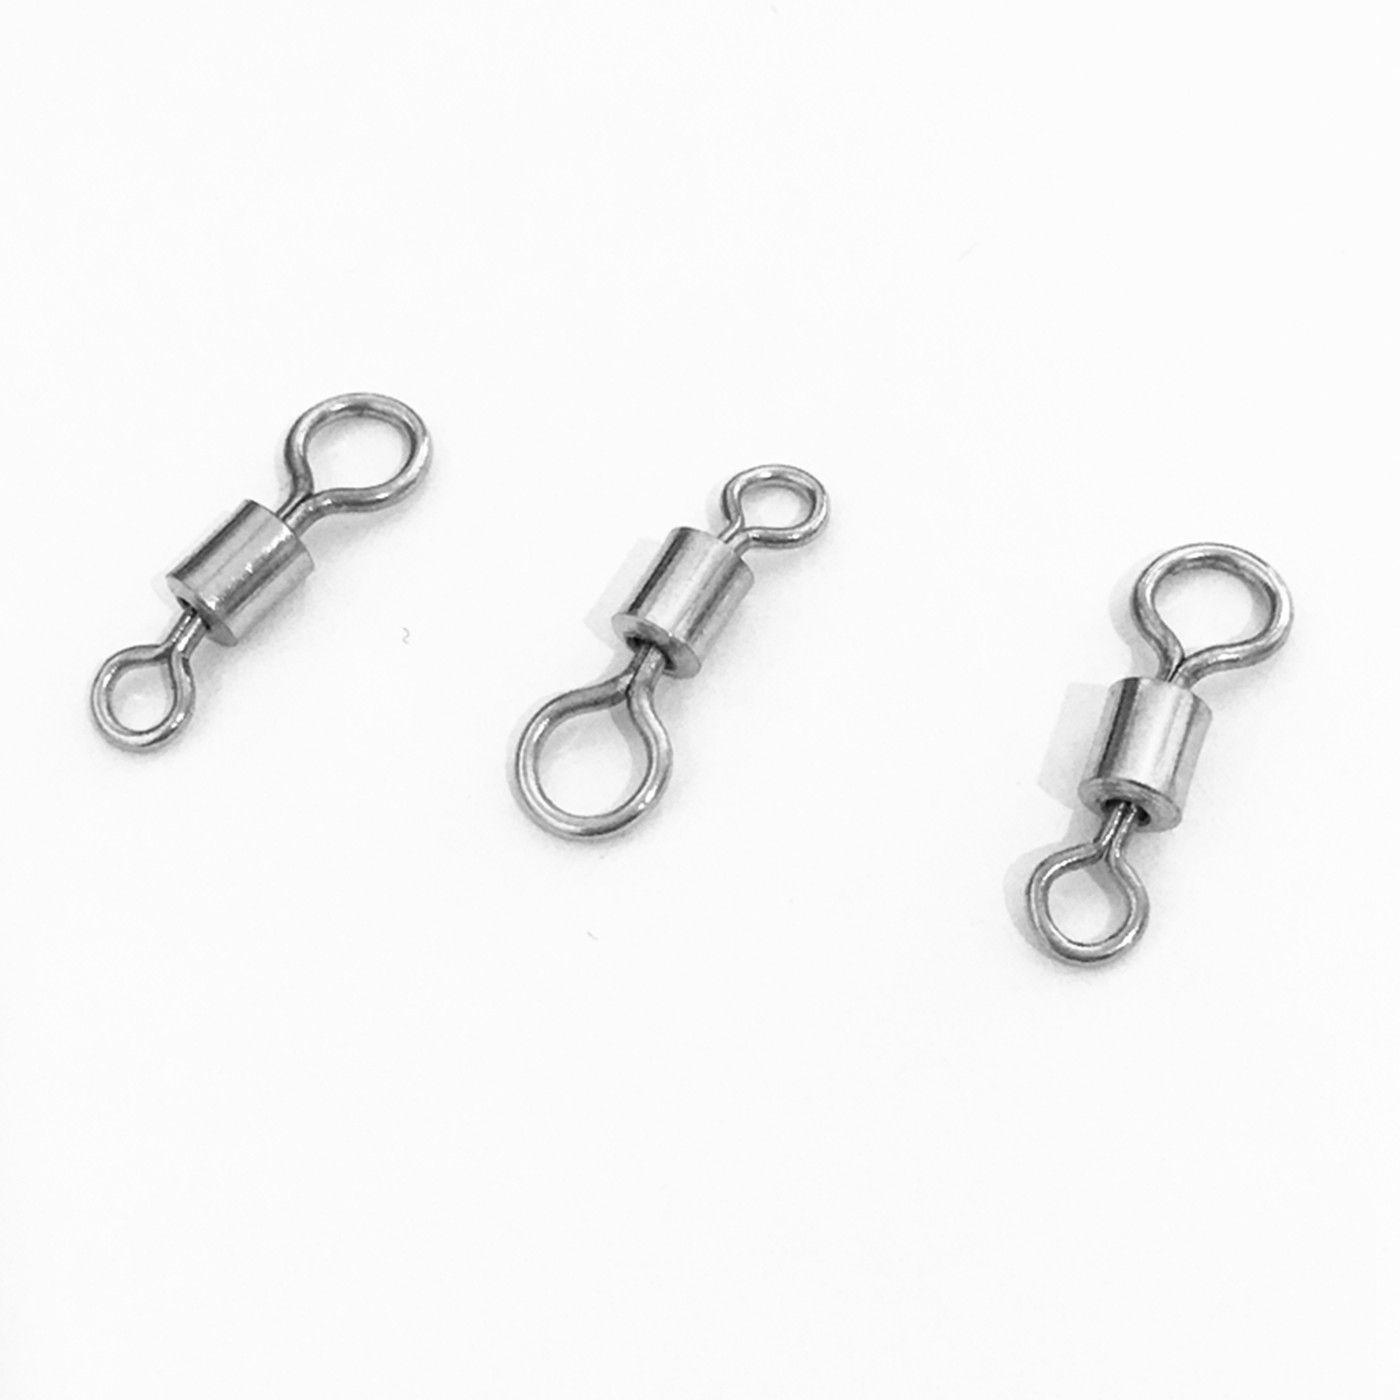 50PCS/LOT Ball Bearing Stainless Steel Fish Connector Rolling Swivels Rig Sea Swivel Accessories Snap Pin LINE FOR Carp Fishing